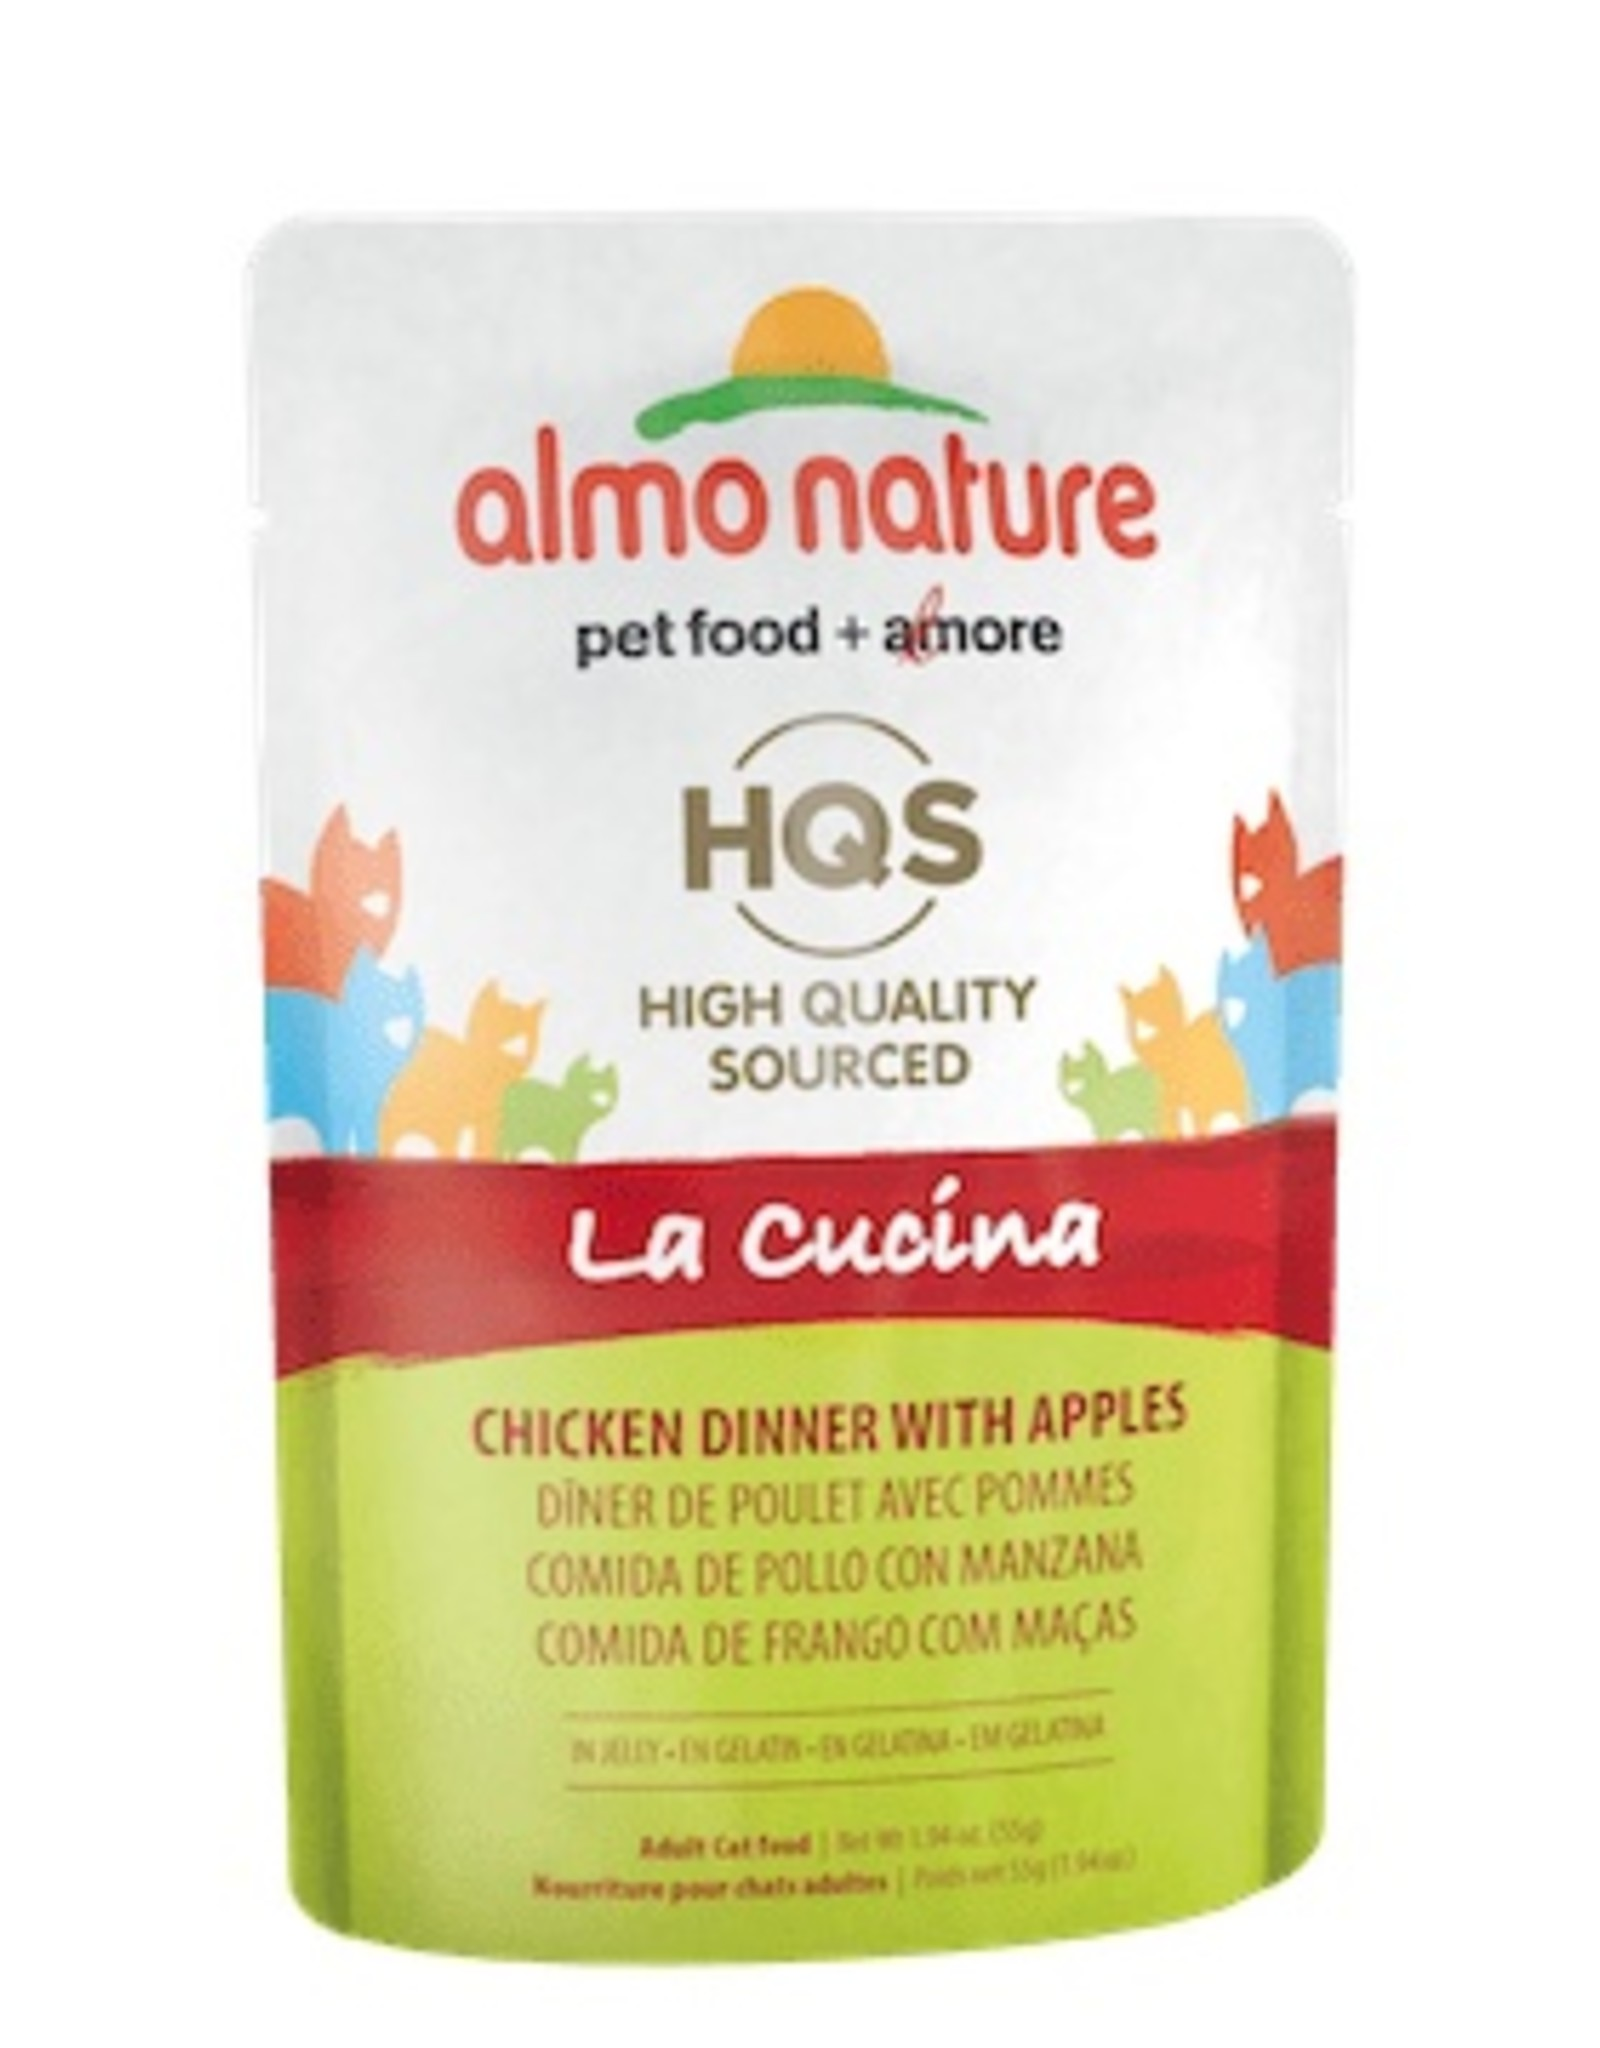 Almo Nature Almo Nature La Cucina Chicken Dinner with Apples Pouch